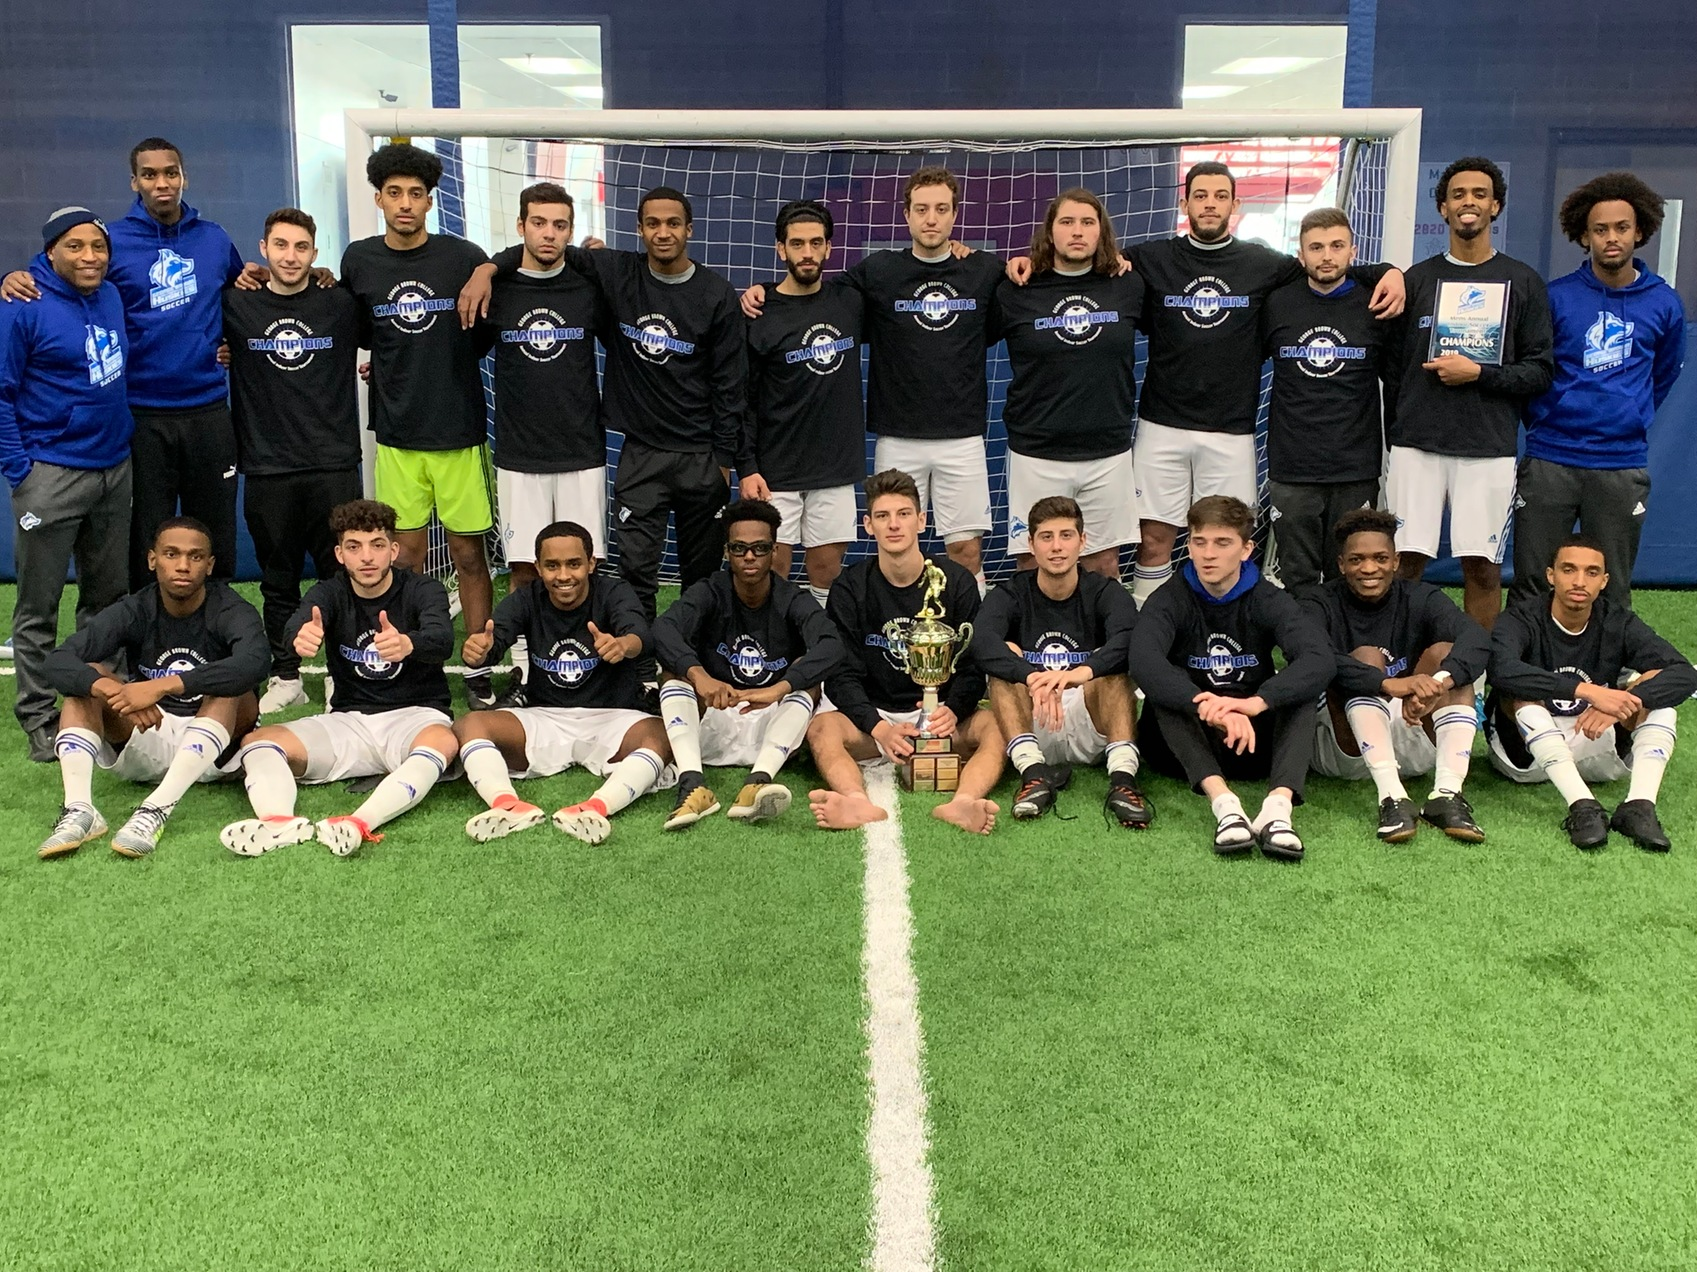 MEN'S INDOOR SOCCER PITCH SHUTOUT IN CLAIMING THIRD STRAIGHT HUSKIES INDOOR SOCCER TITLE